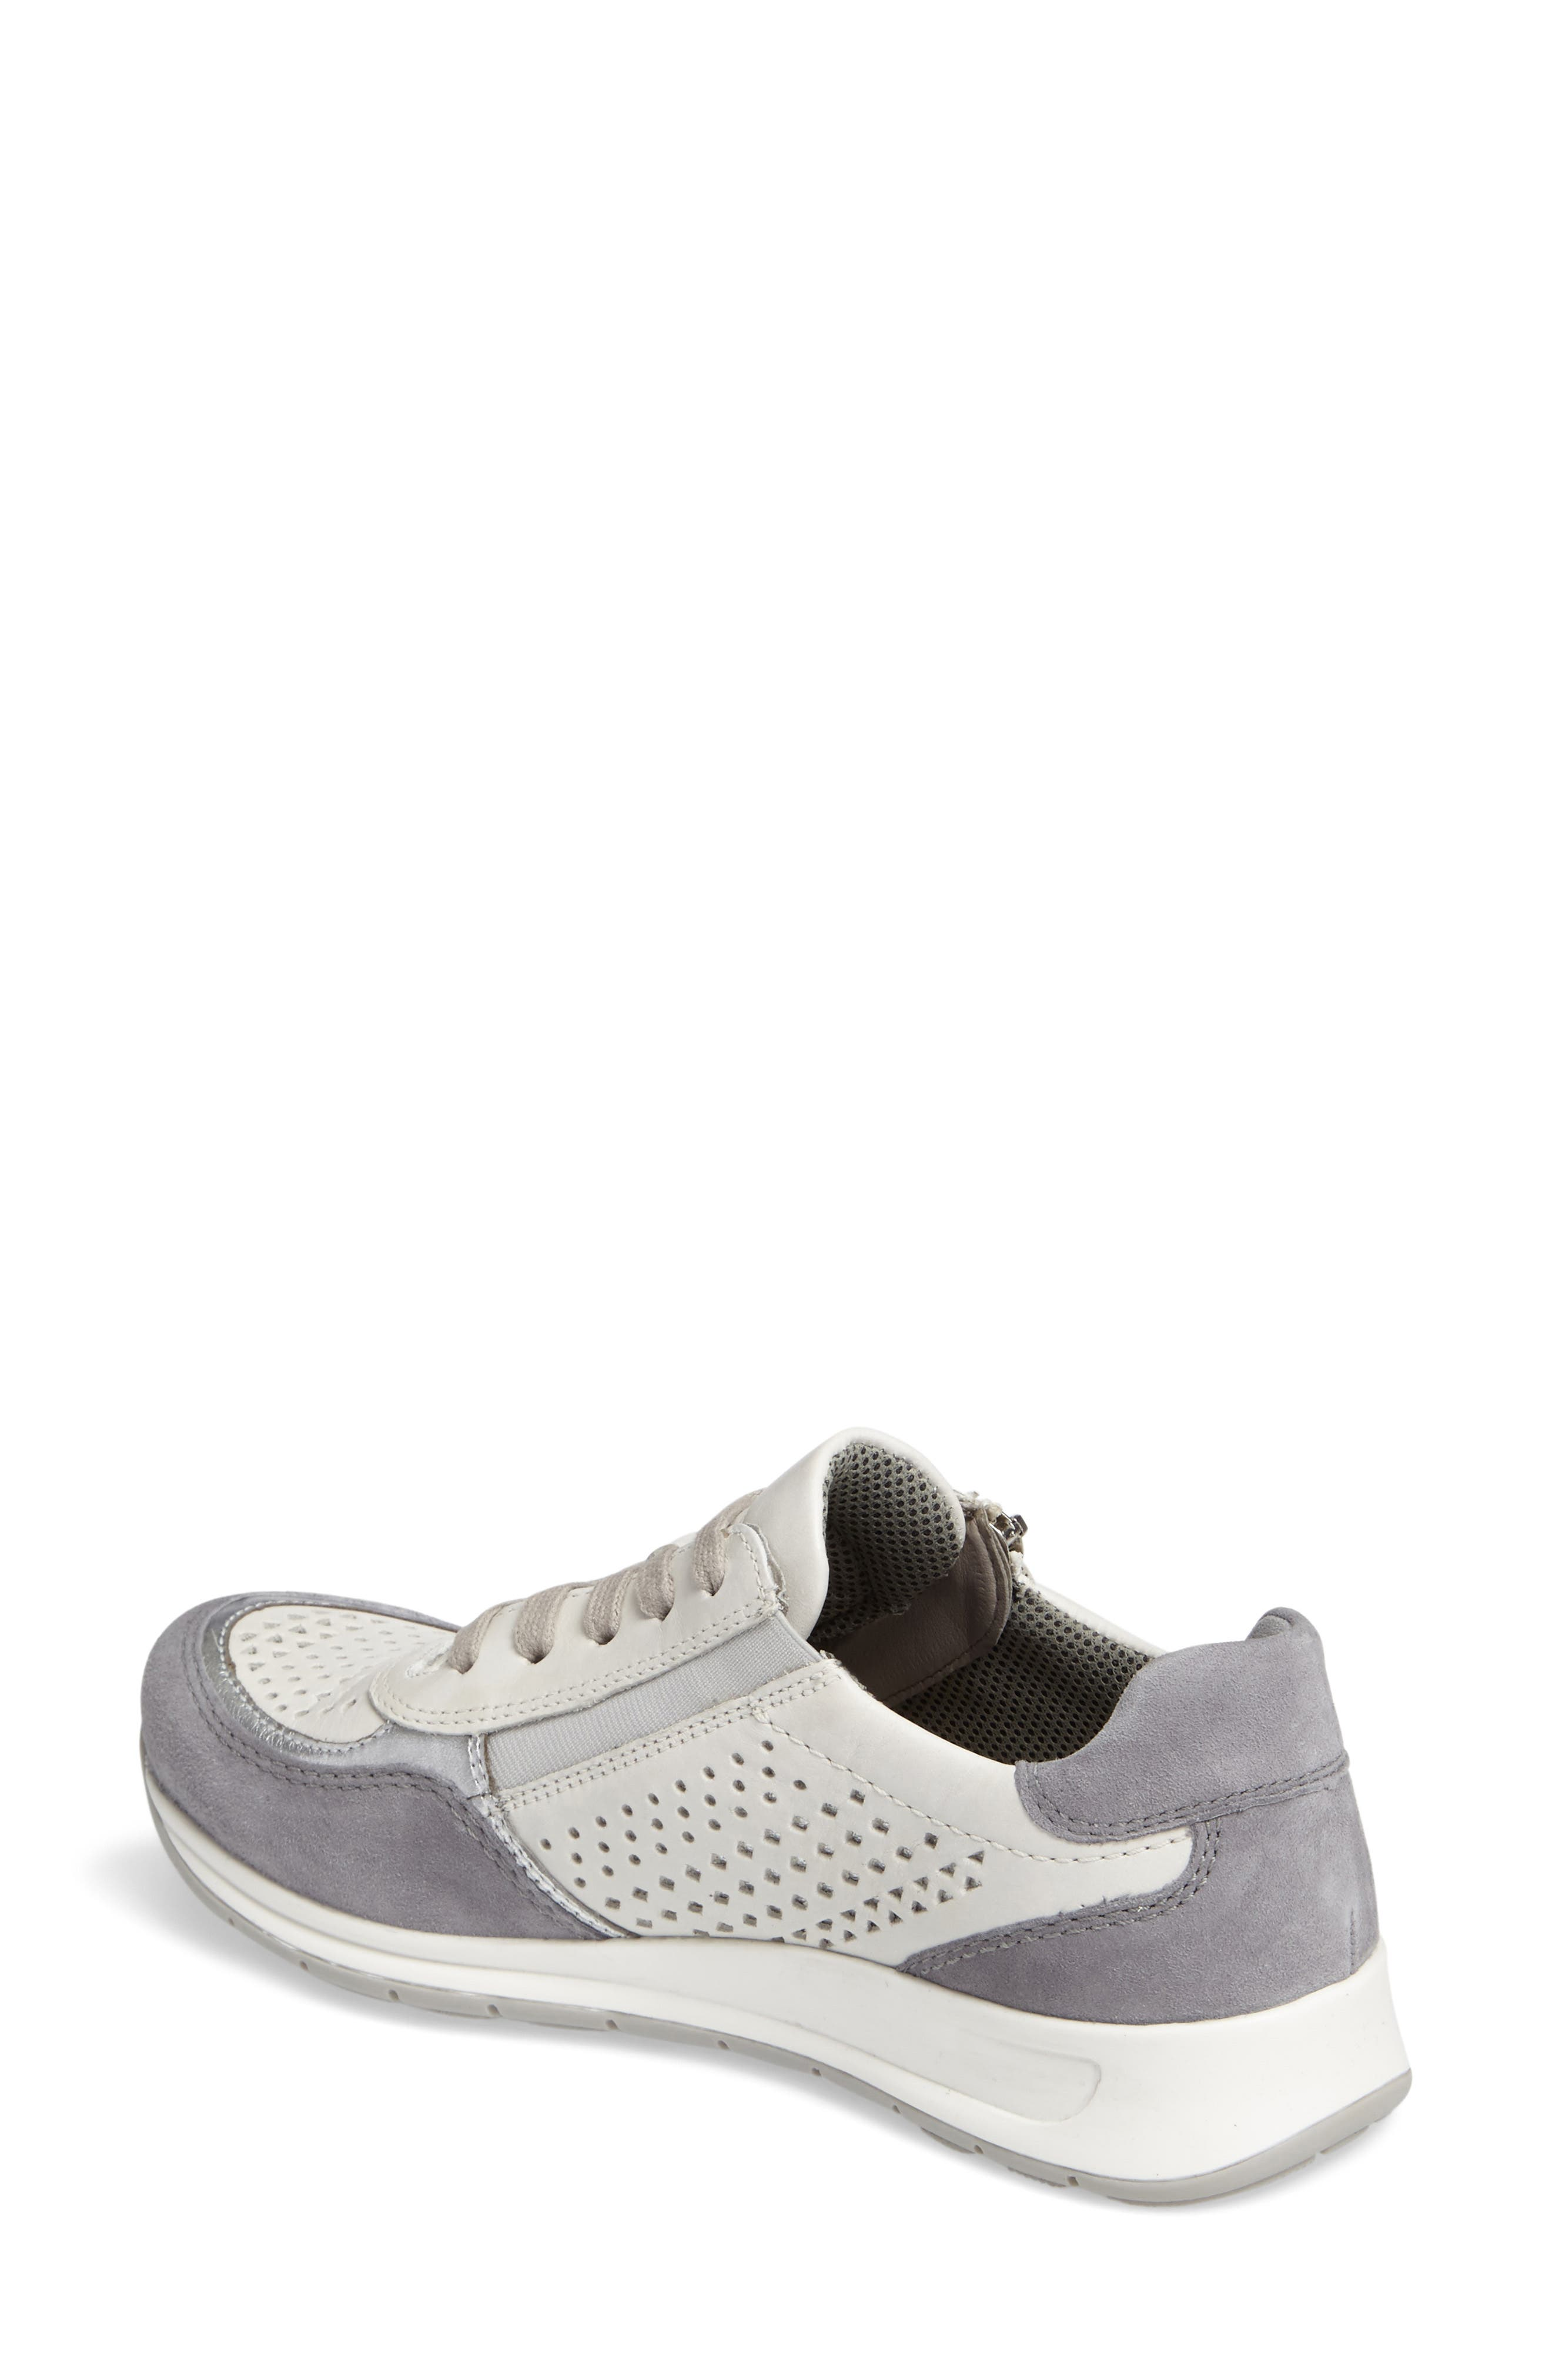 Olivia Perforated Sneaker,                             Alternate thumbnail 2, color,                             SILVER SUEDE